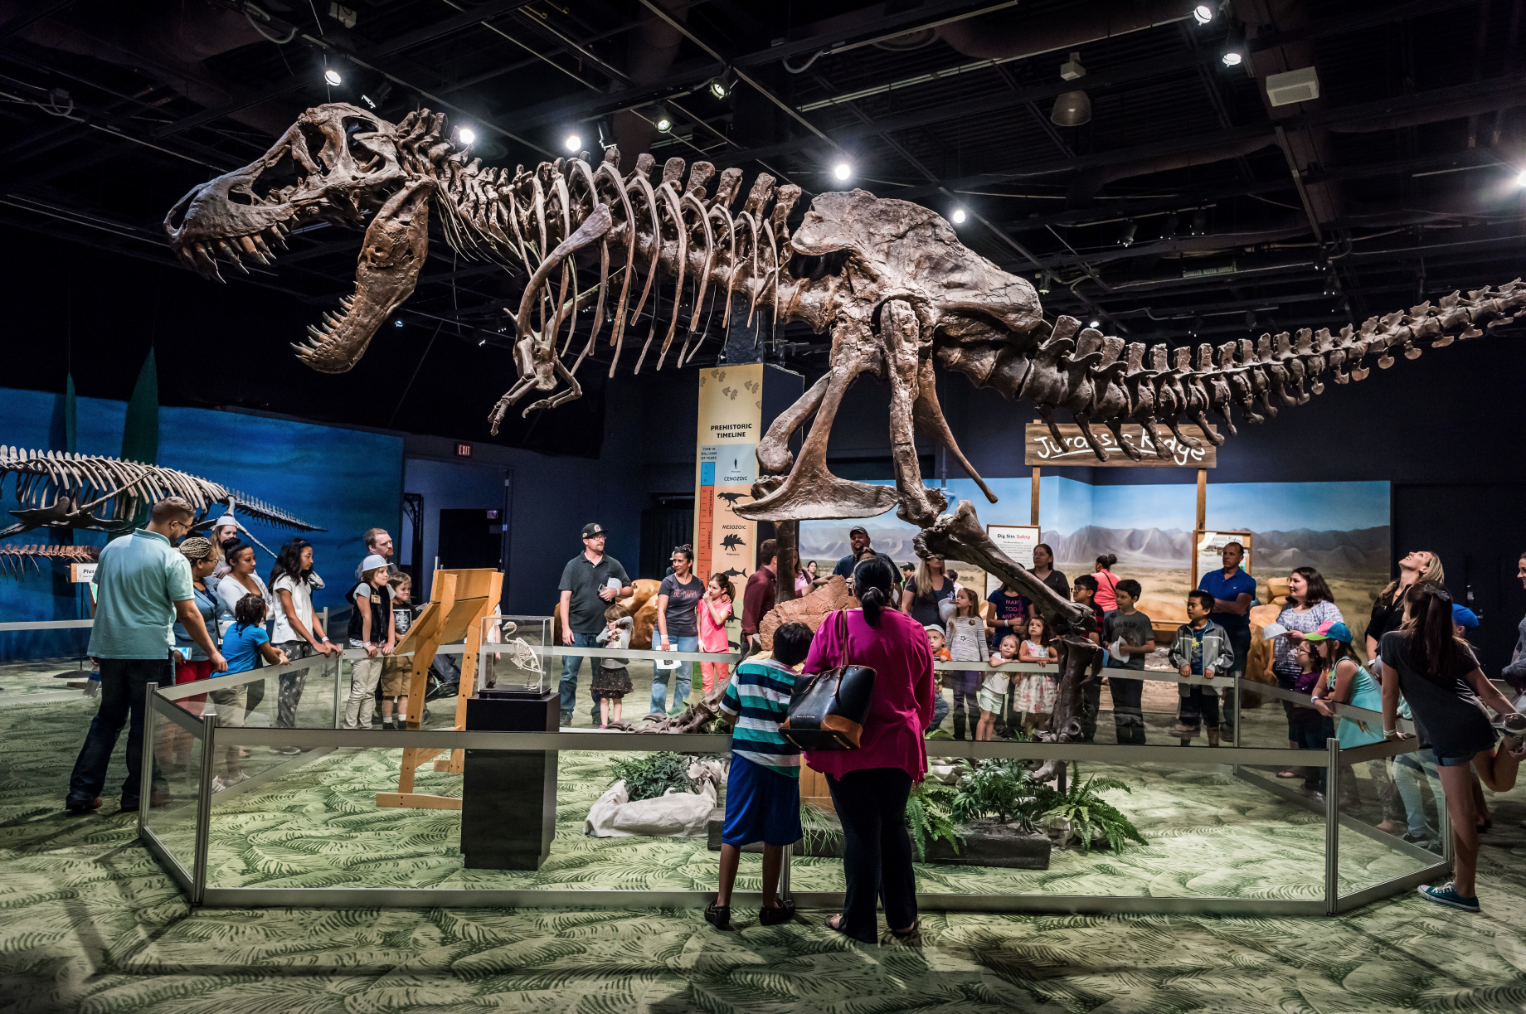 $10 Day at Orlando Science Center: image of people looking at T-Rex skeleton